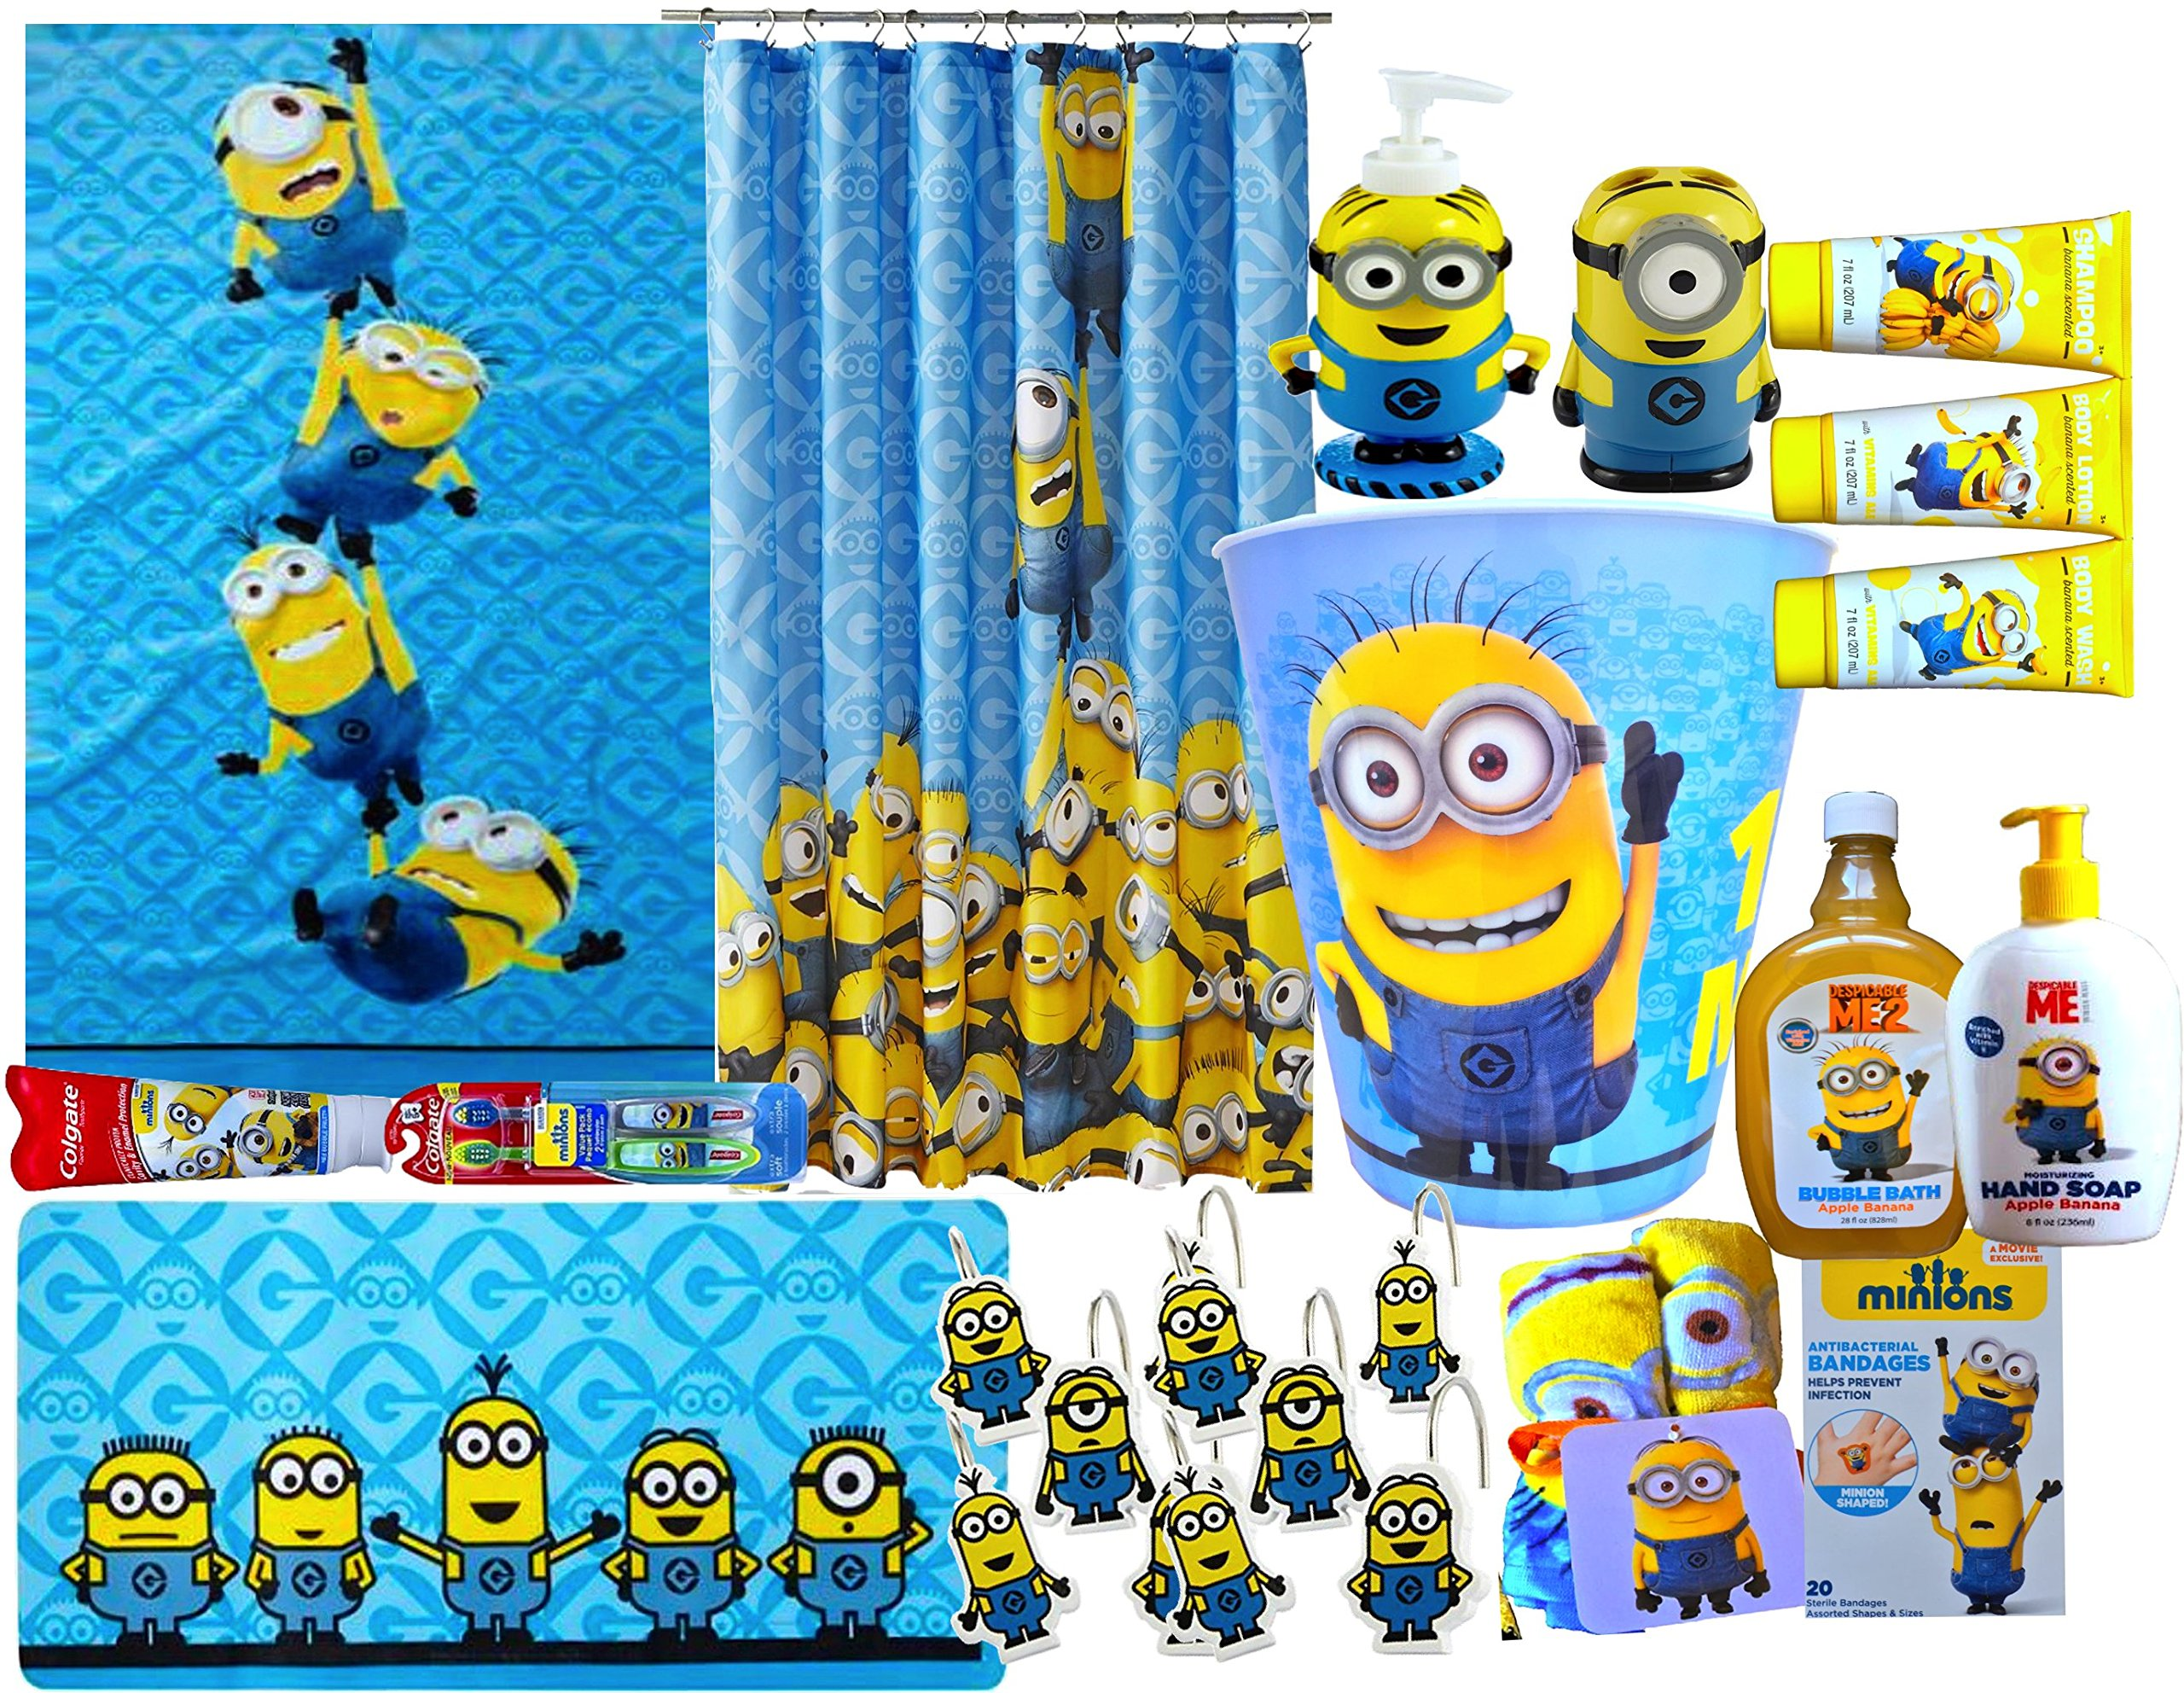 Minions Movie Exclusive 16 Piece Jumbo Children's Bathroom Gift Set Includes Minions Bath Towel, Minions Shower Curtain, Minions Wastebasket, Minions Shower Hooks, Bath Rug & More ! by Minions